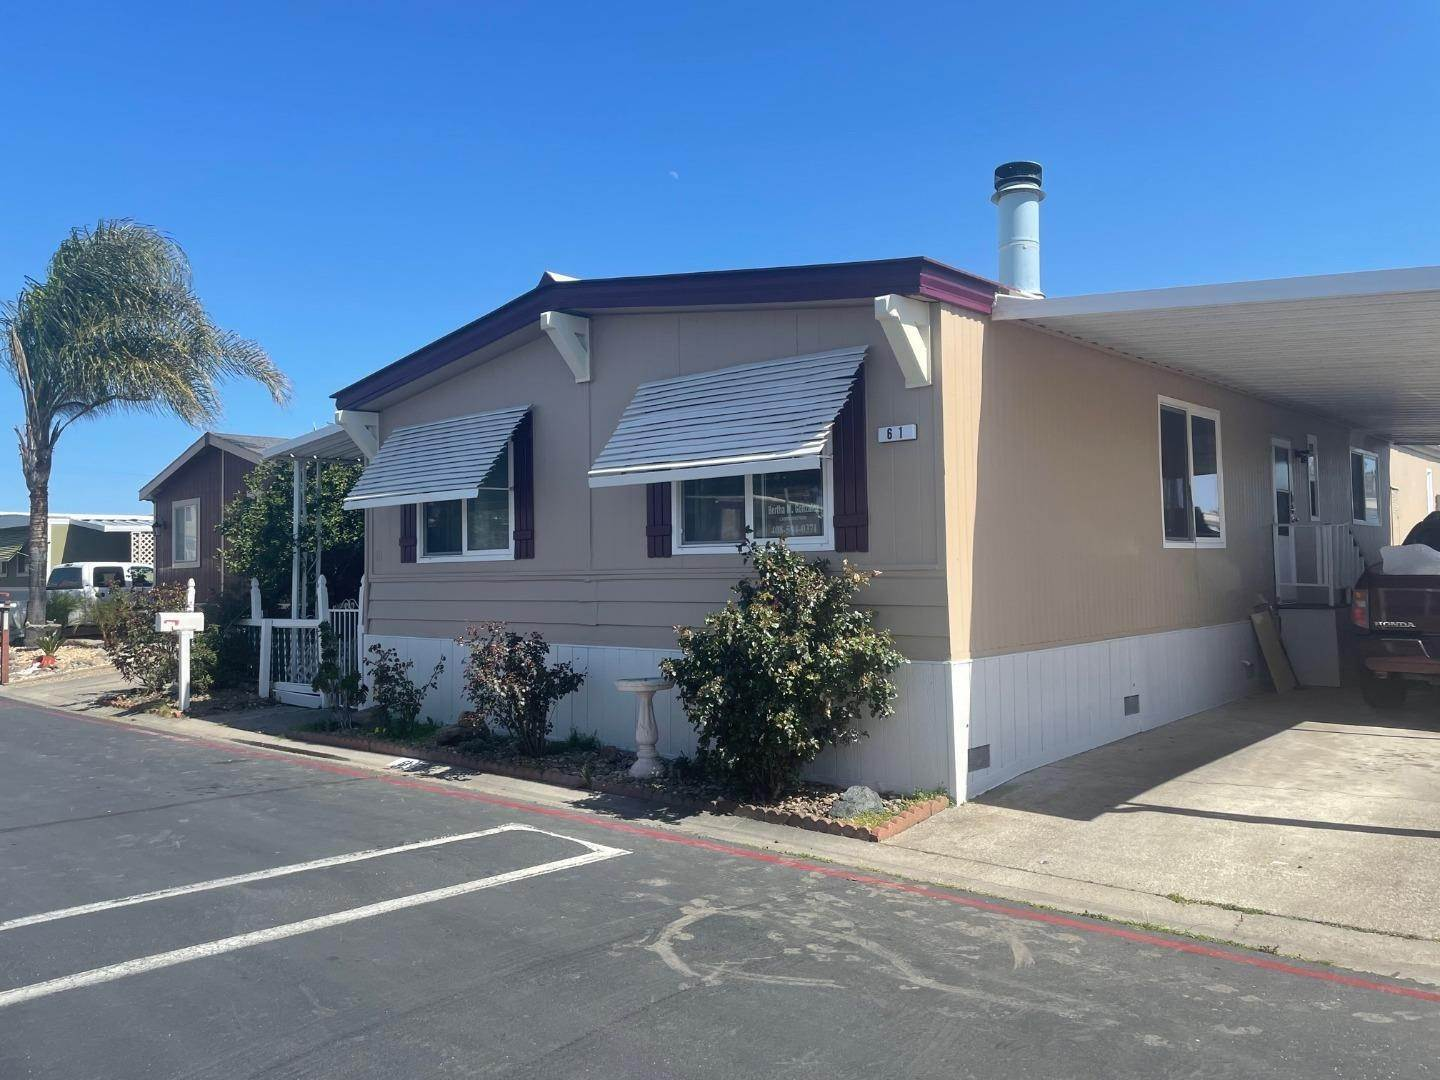 Other Residential Homes for Sale at 15820 S Harlan RD 61 Lathrop, California 95330 United States